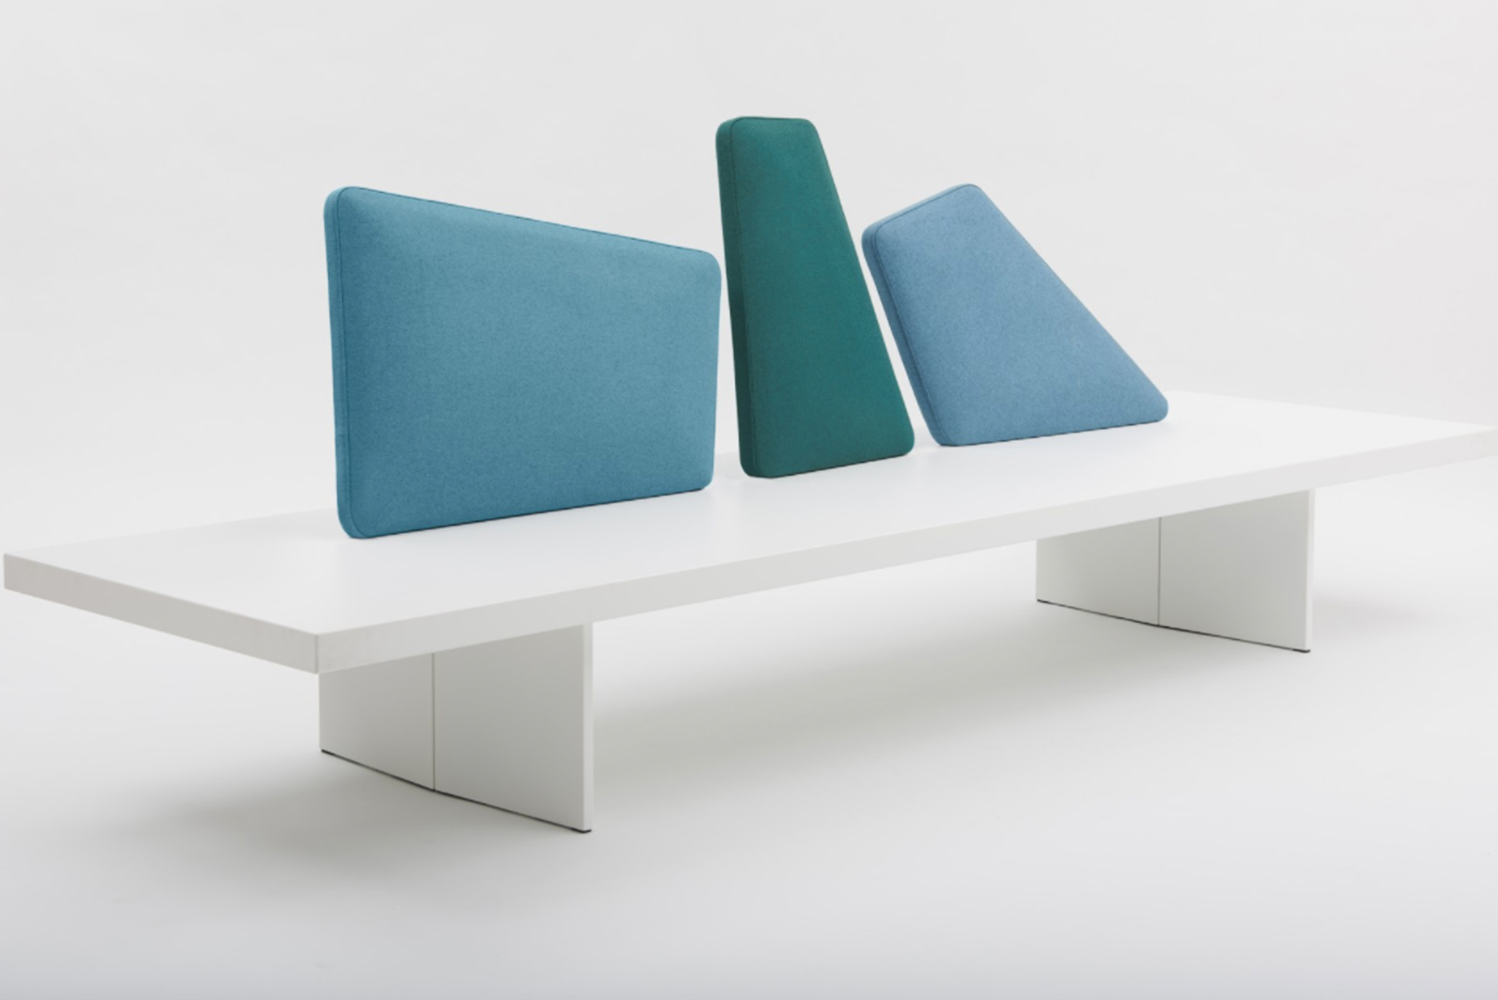 Italian furniture brand Segis launched the Iceland bench, which mimics the icy crags of glaciers found throughout Iceland.